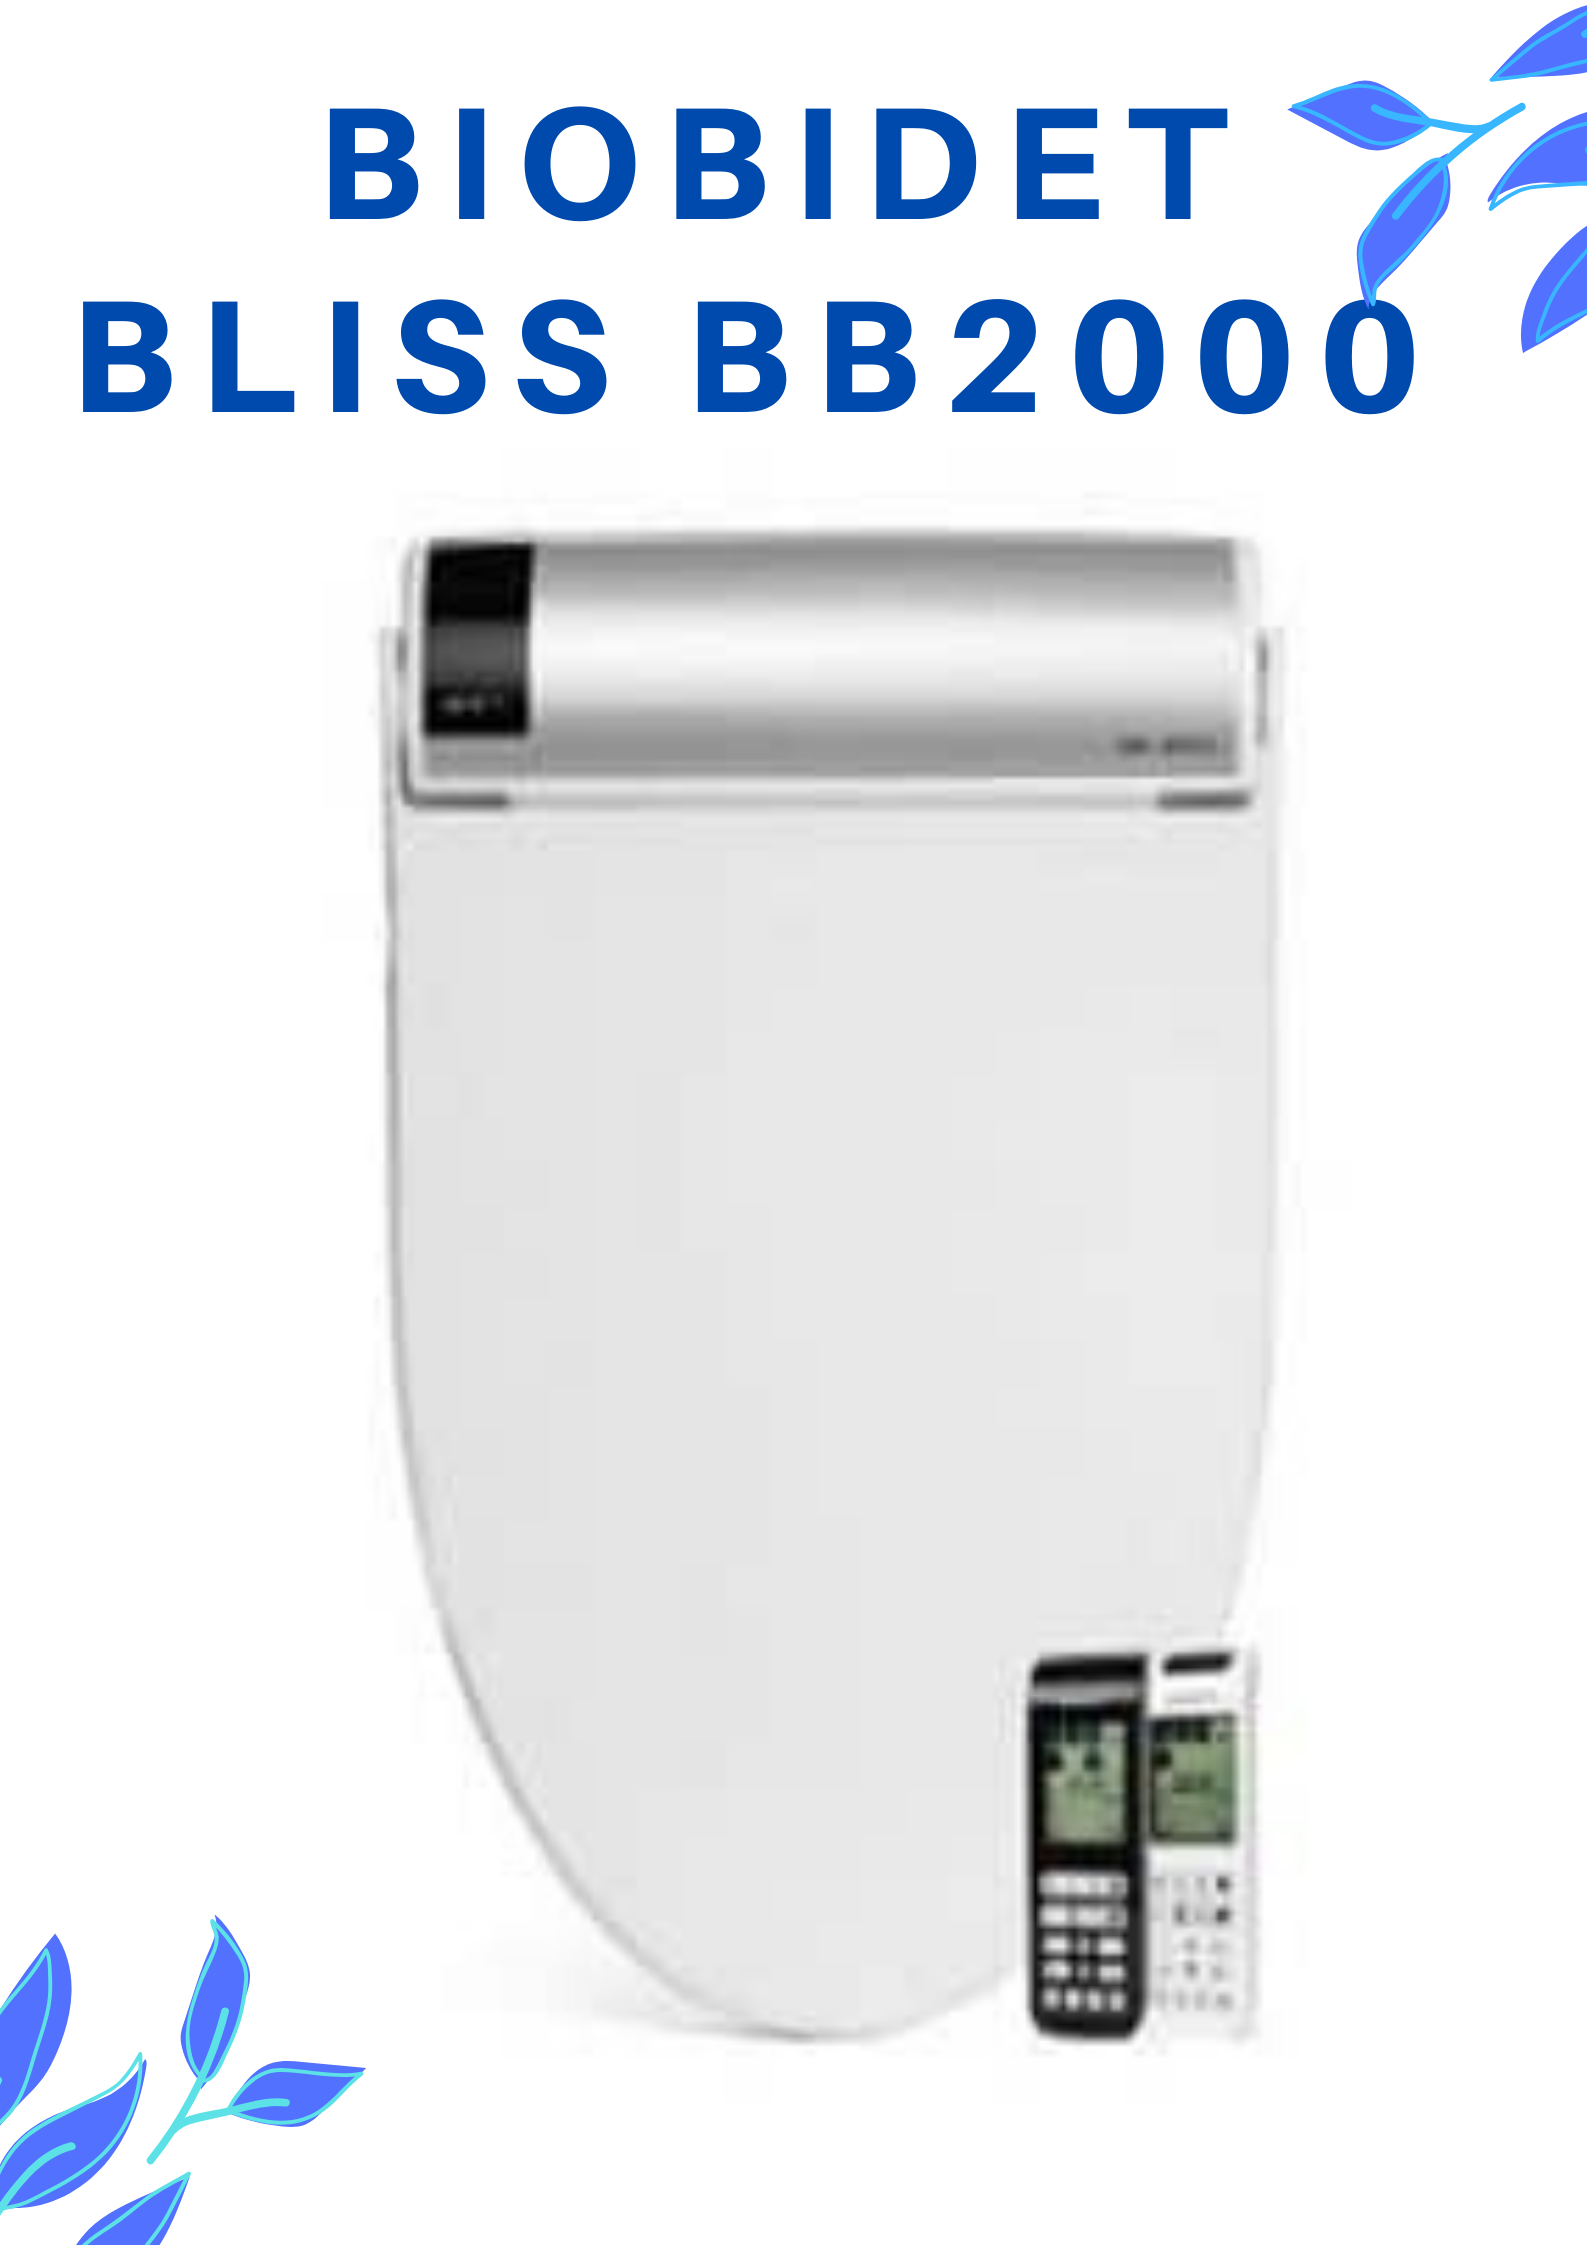 Pin On 10 Best Bidet Toilet Seat Review